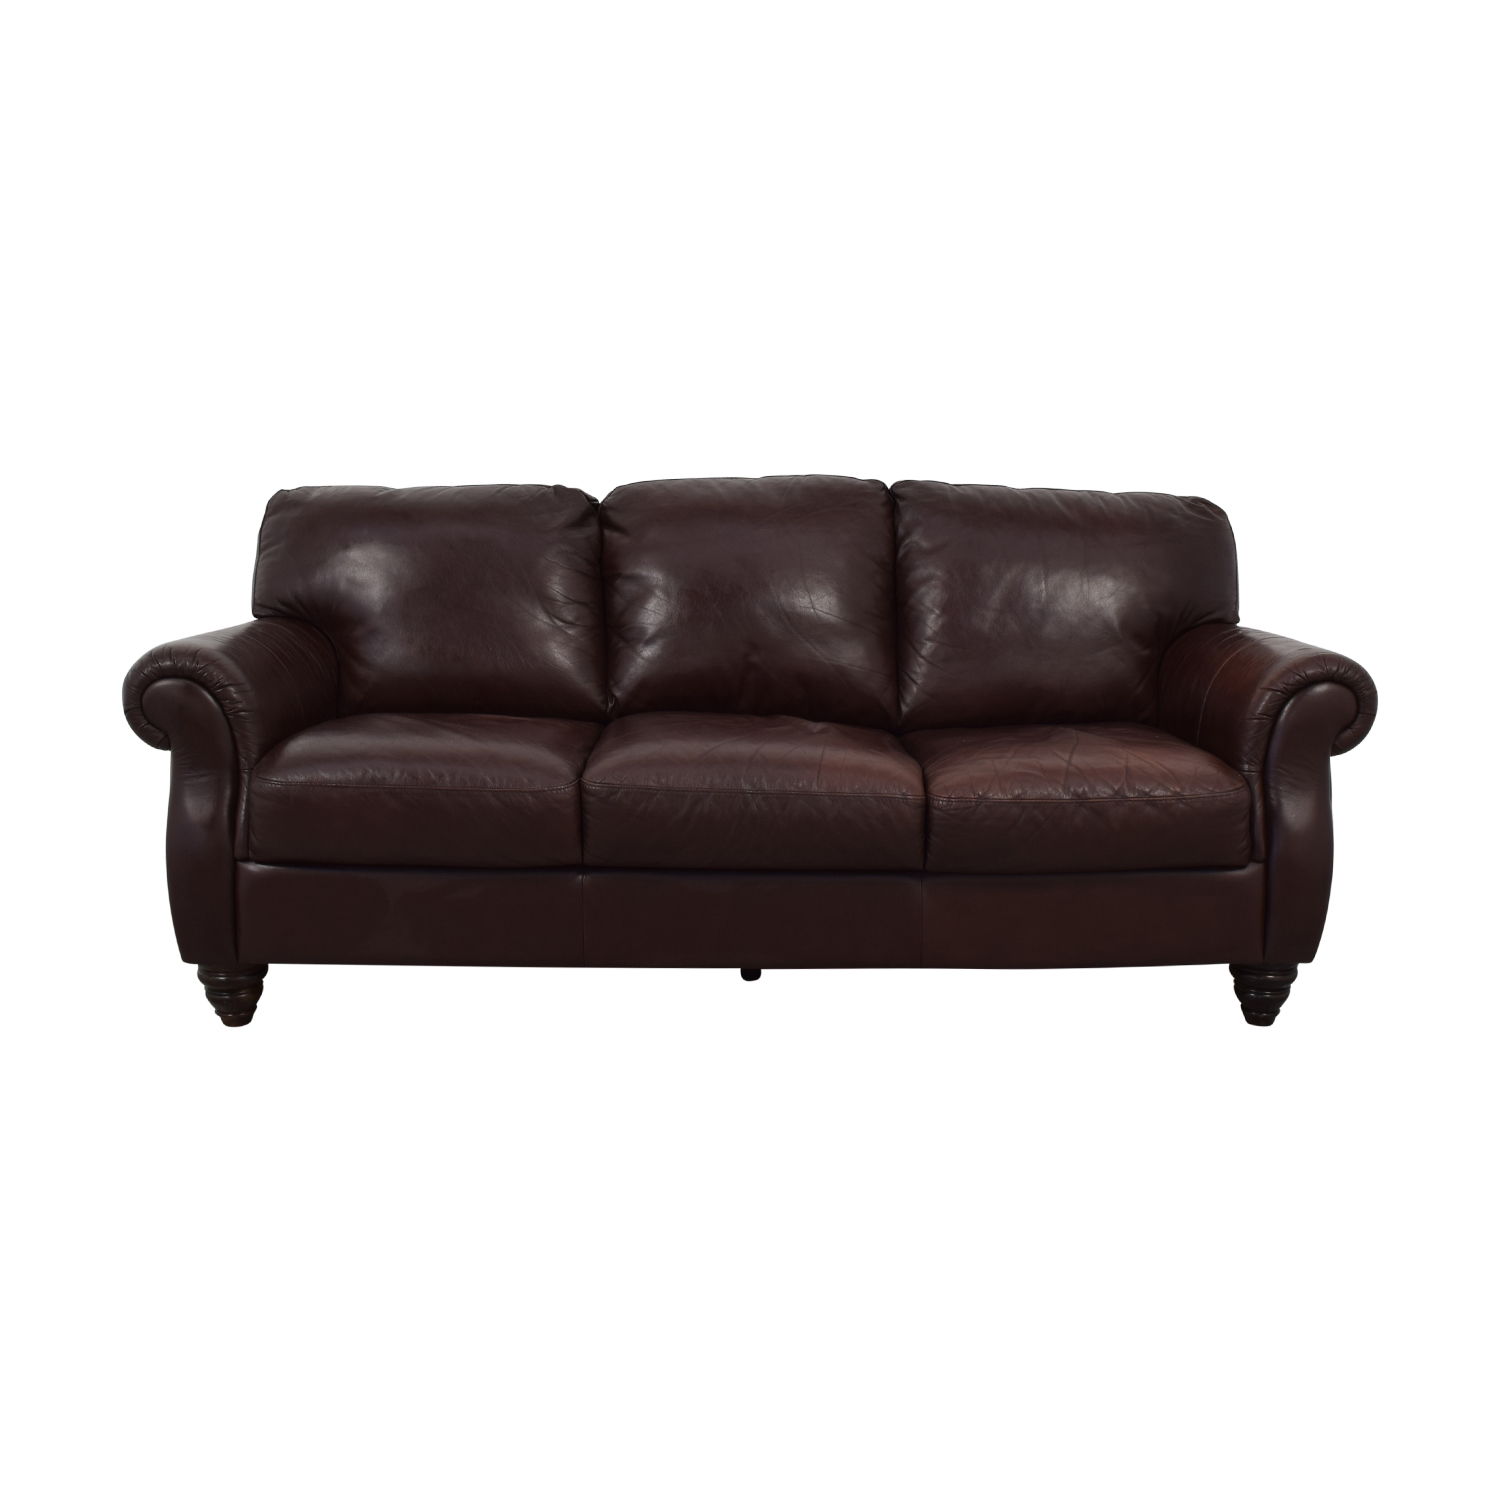 77 Off Fortunoff Italsofa Brown Three Cushion Sofa Sofas